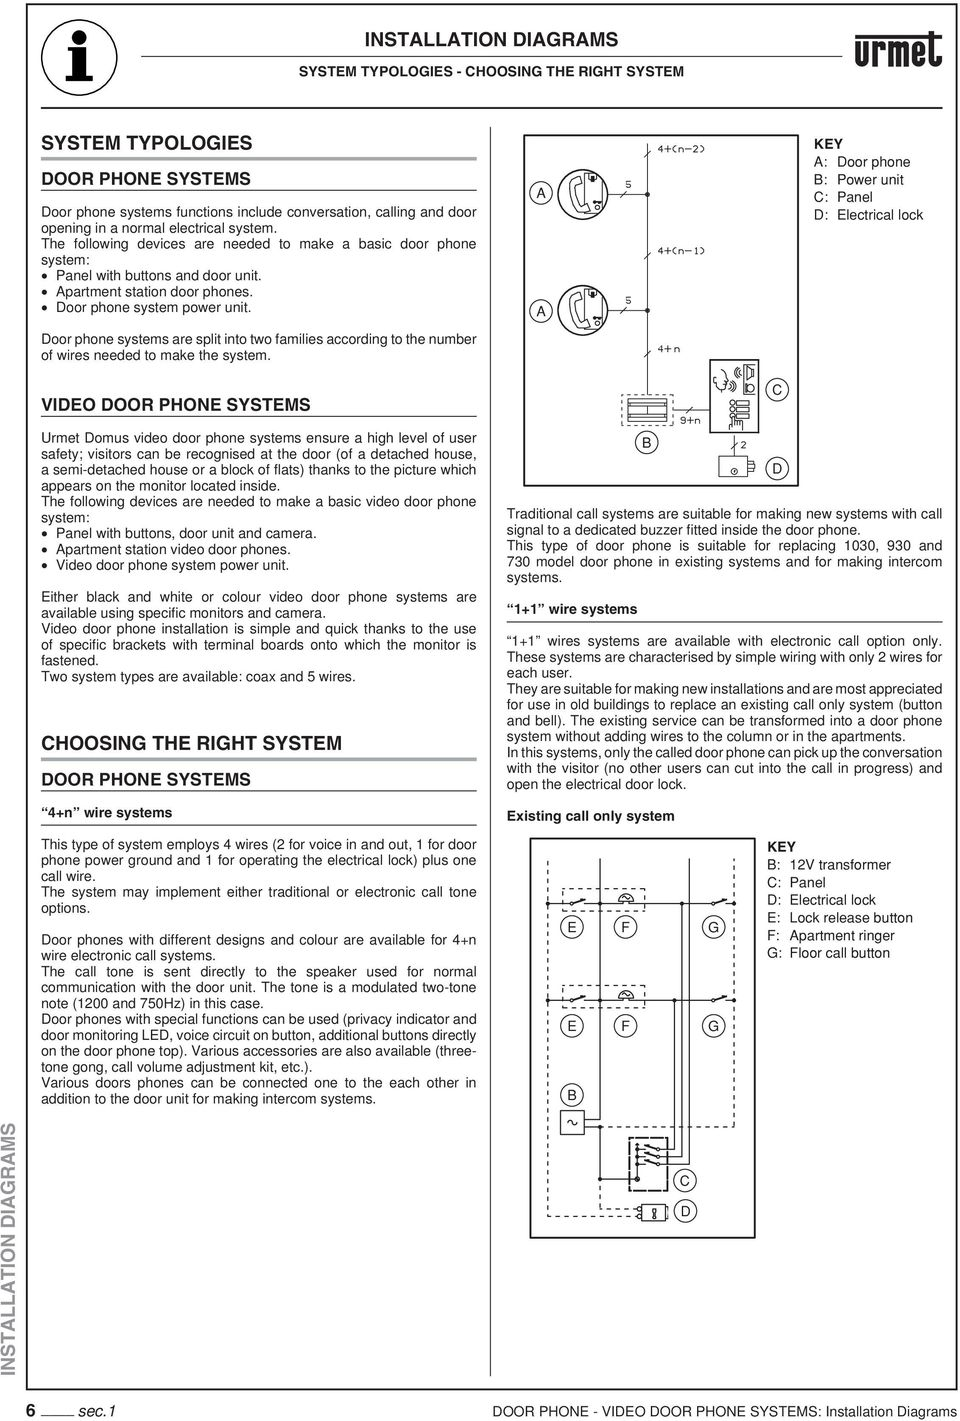 Installation Diagrams Pdf Split System Wiring Diagram Simple Oor Phone Systems Are Into Two Families According To The Number Of Wires Needed